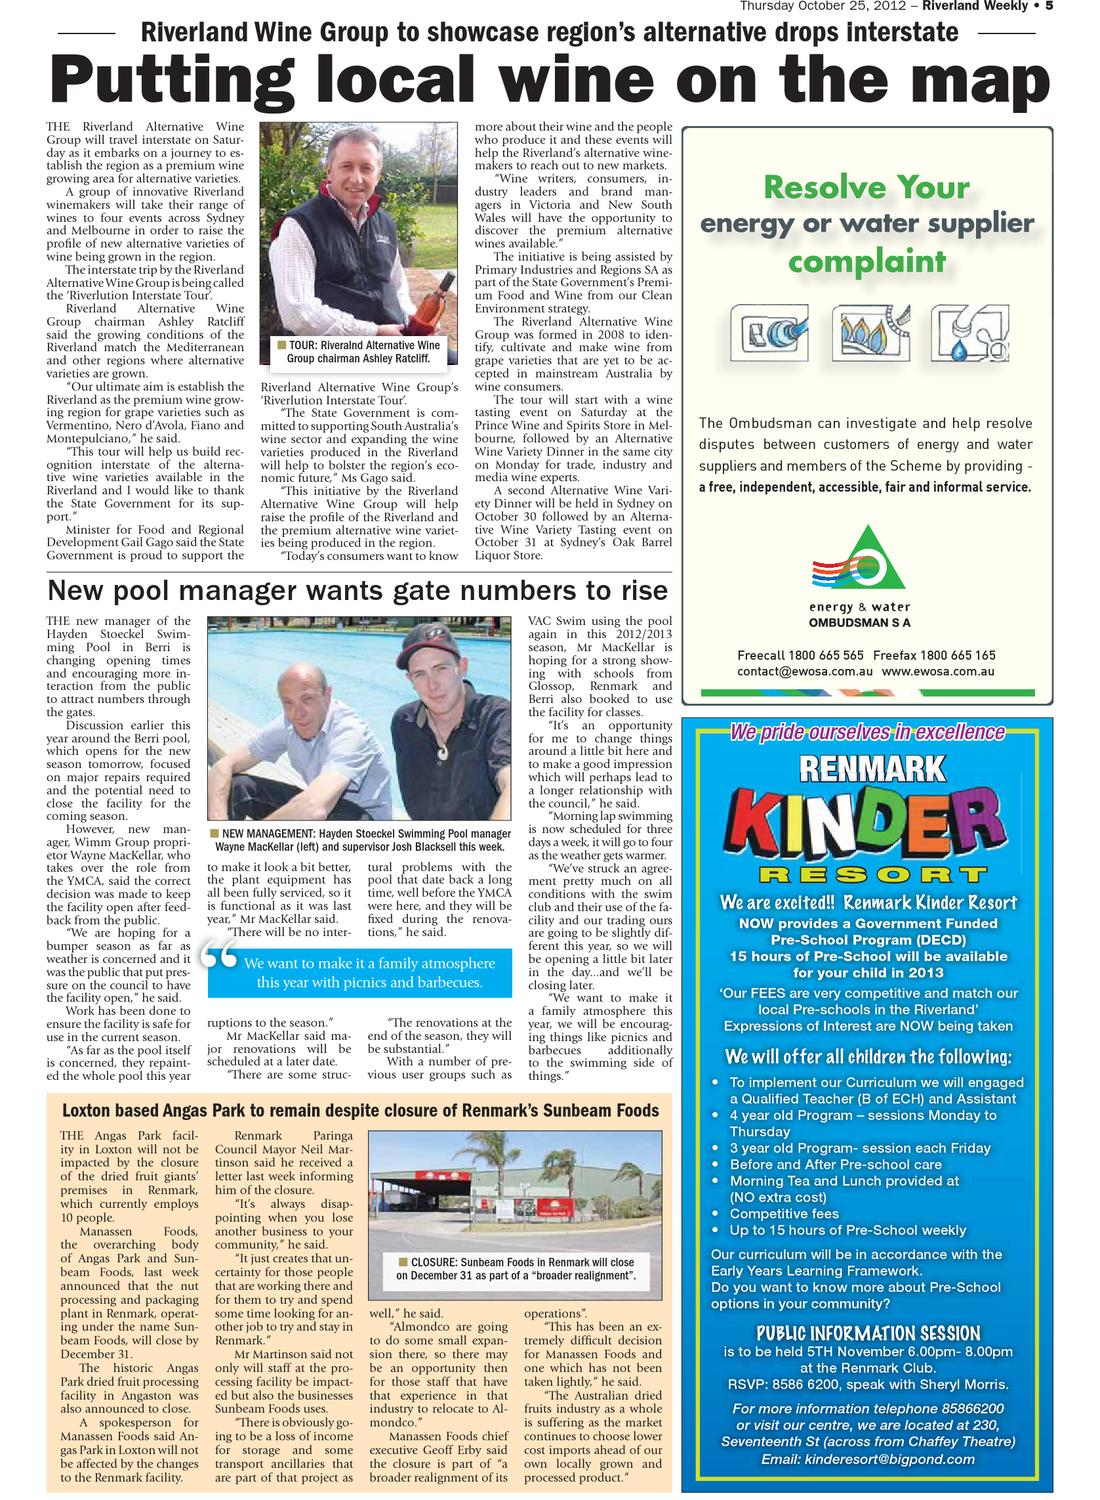 Riverland Weekly by Riverland Weekly - issuu